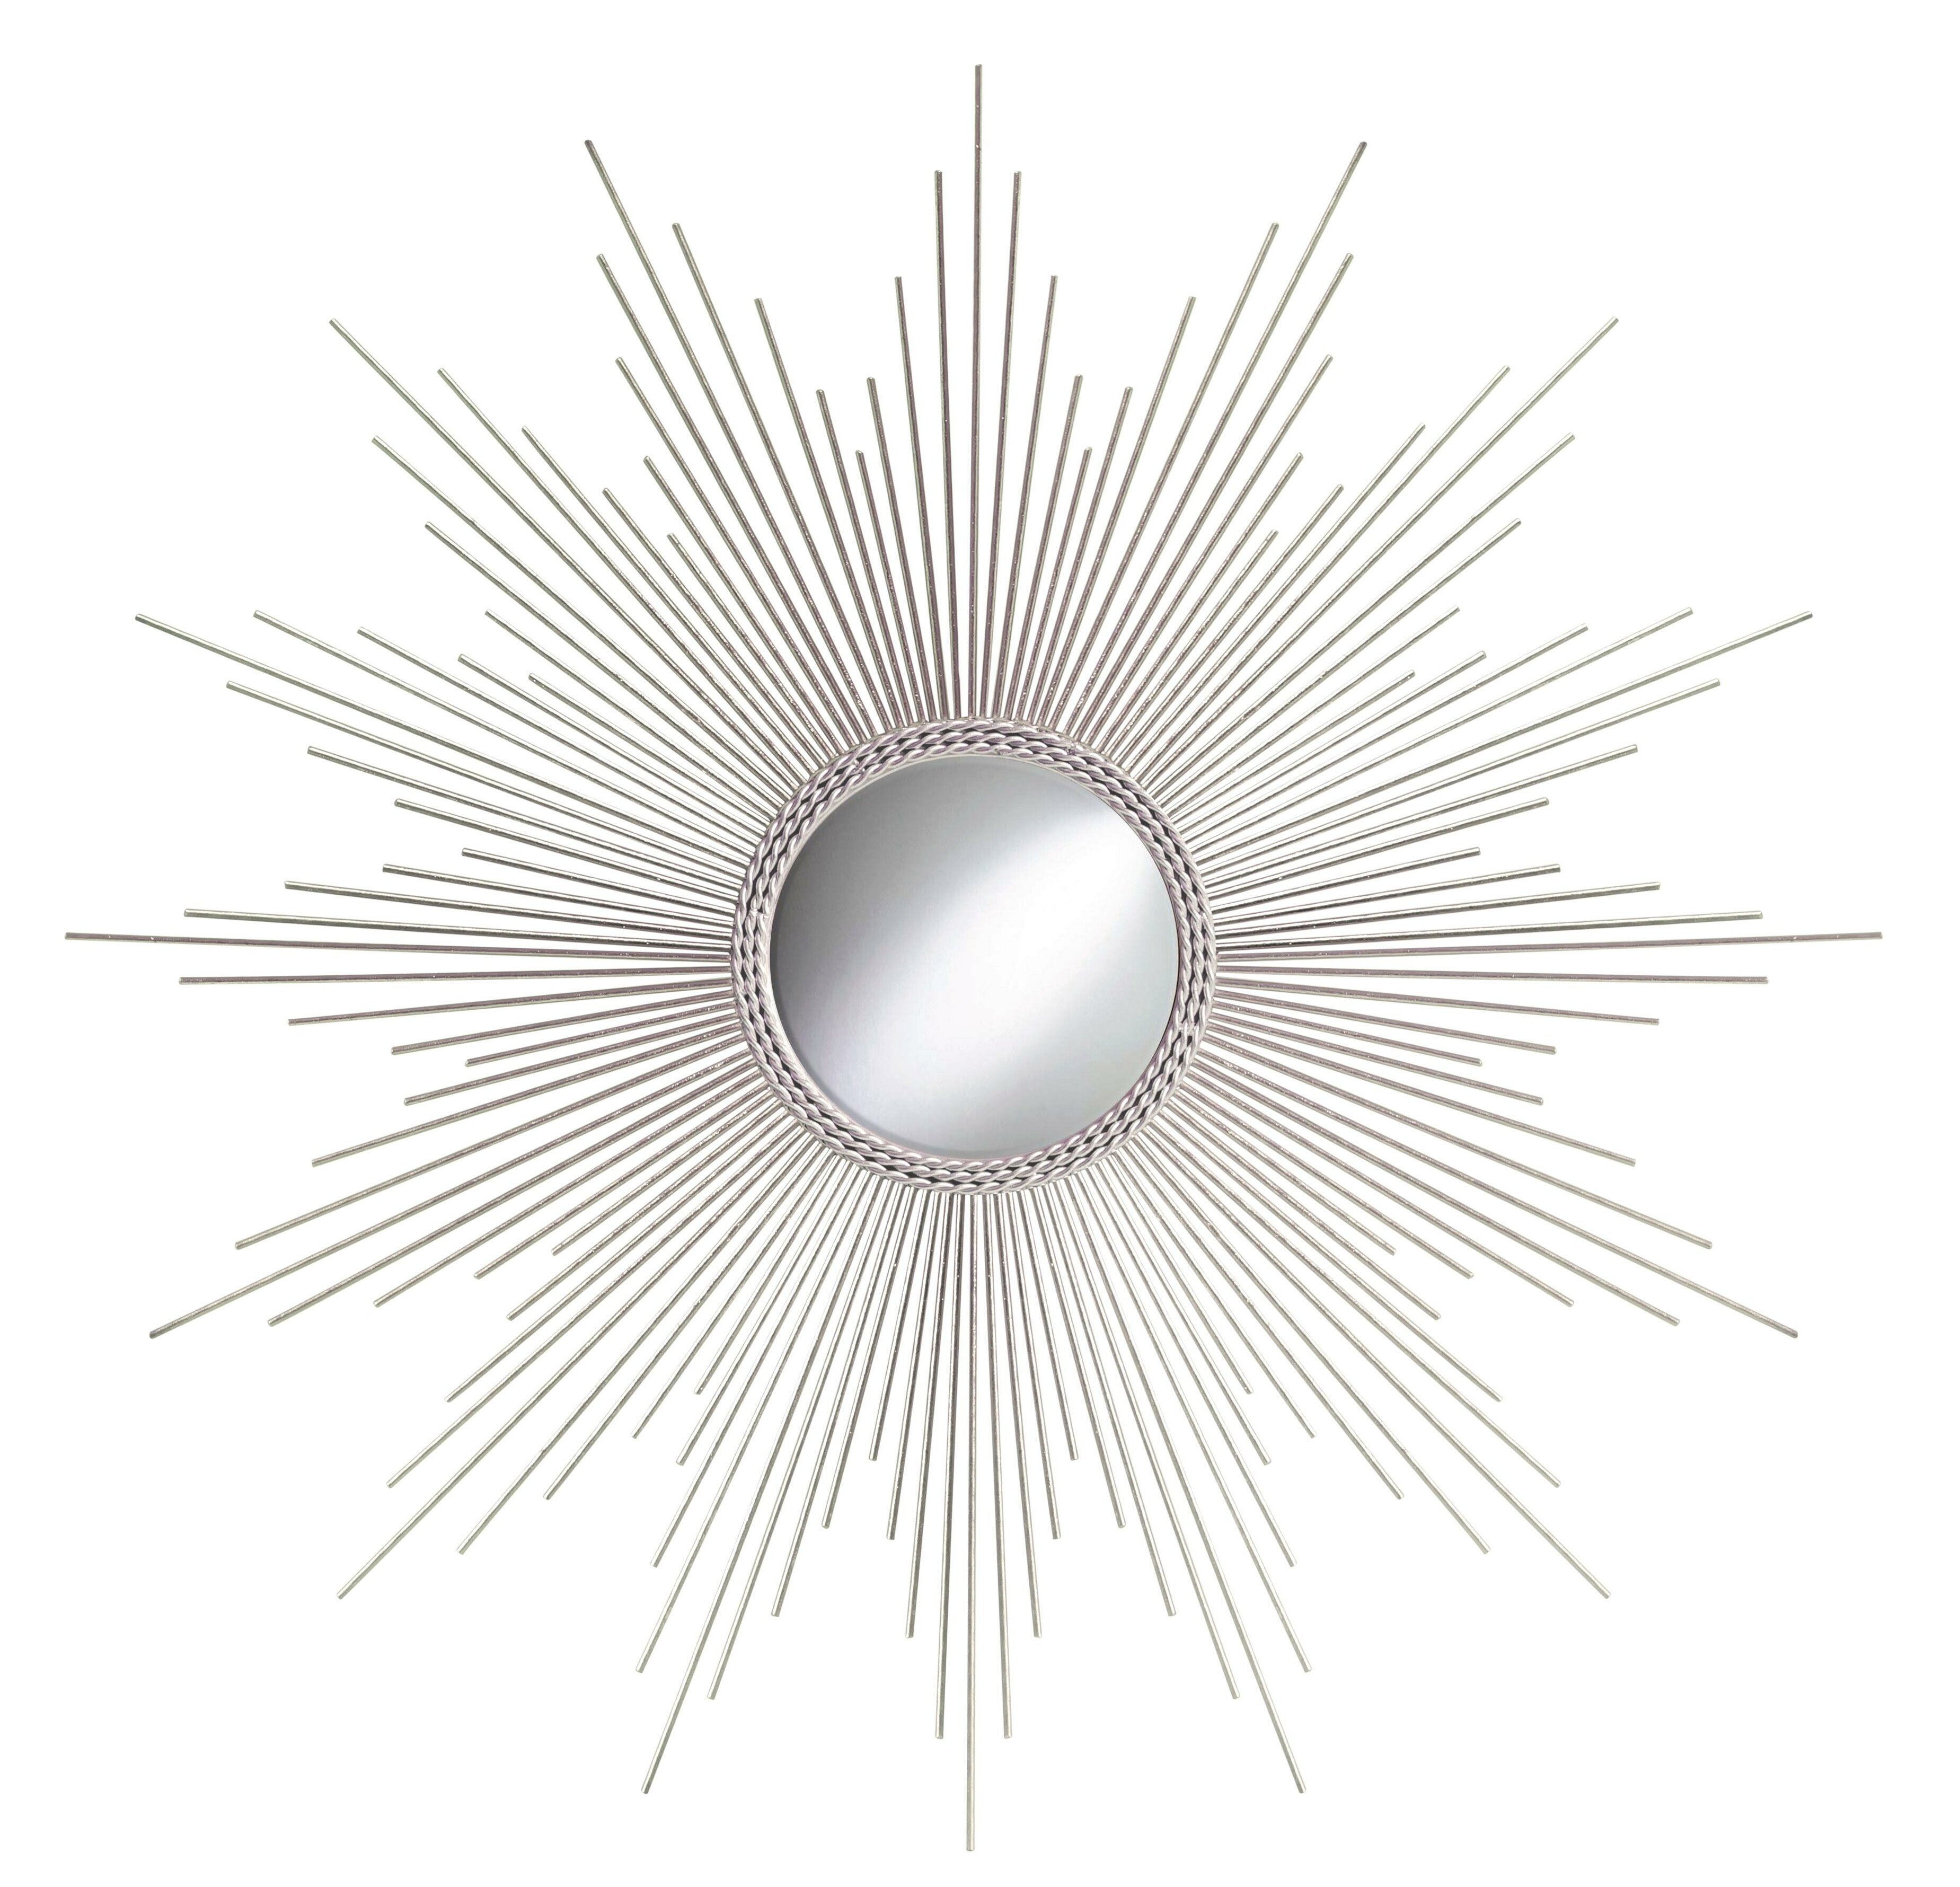 Metal Sunburst Wall Mirrors You'll Love In 2019 | Wayfair Pertaining To Estrela Modern Sunburst Metal Wall Mirrors (View 4 of 20)